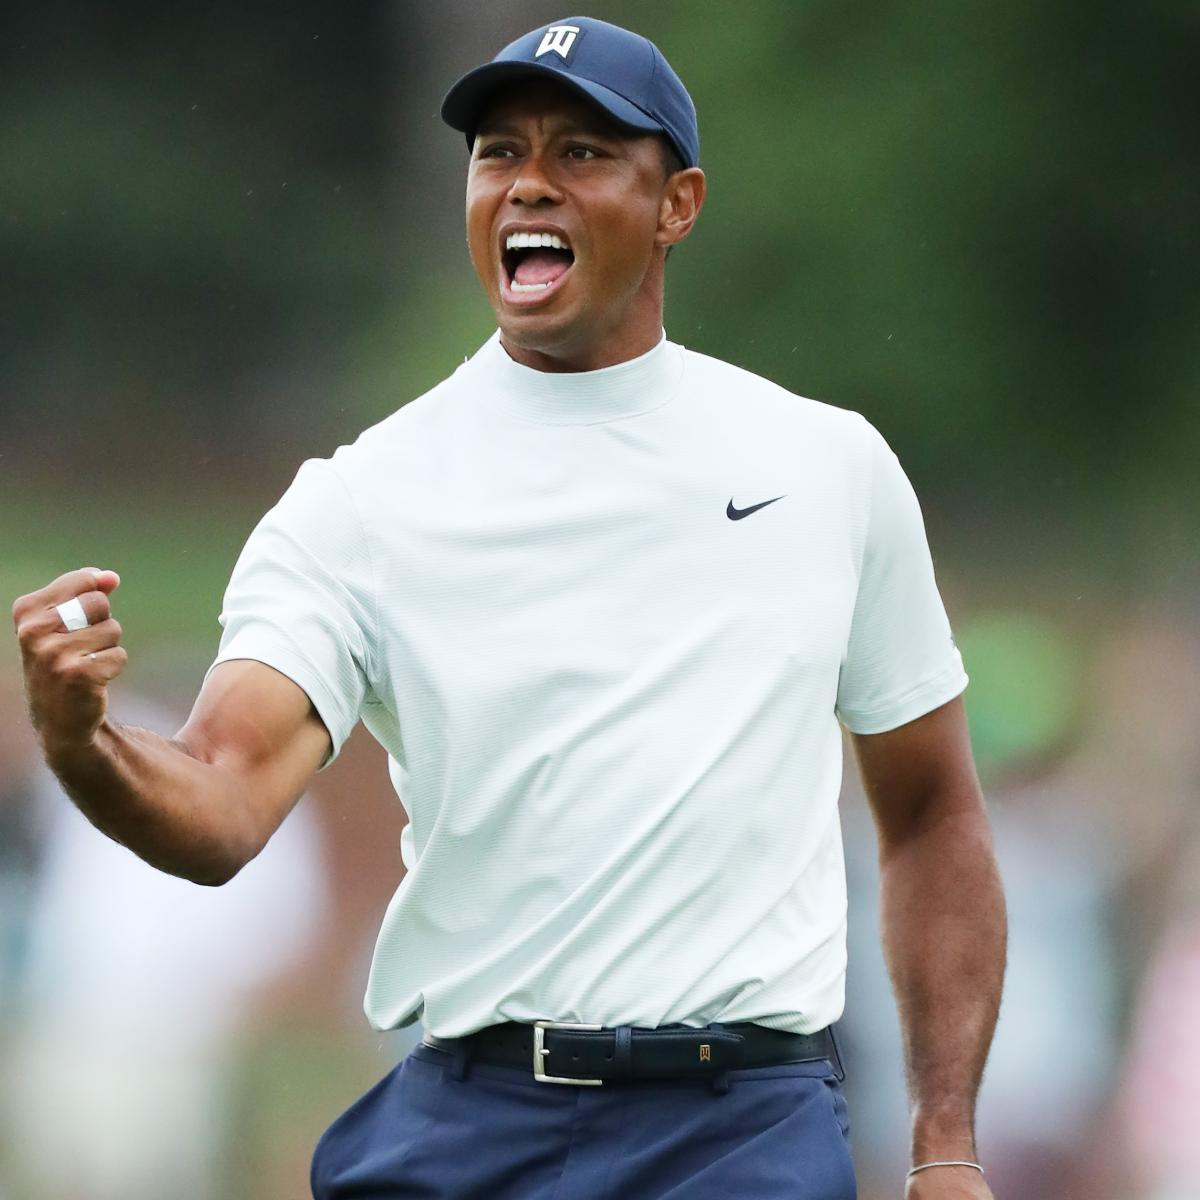 Tiger Woods seemed undeterred after a security guard accidentally slid into him following a shot on the 14th hole at the Masters on Friday at Augusta National Golf Club in Georgia: ...